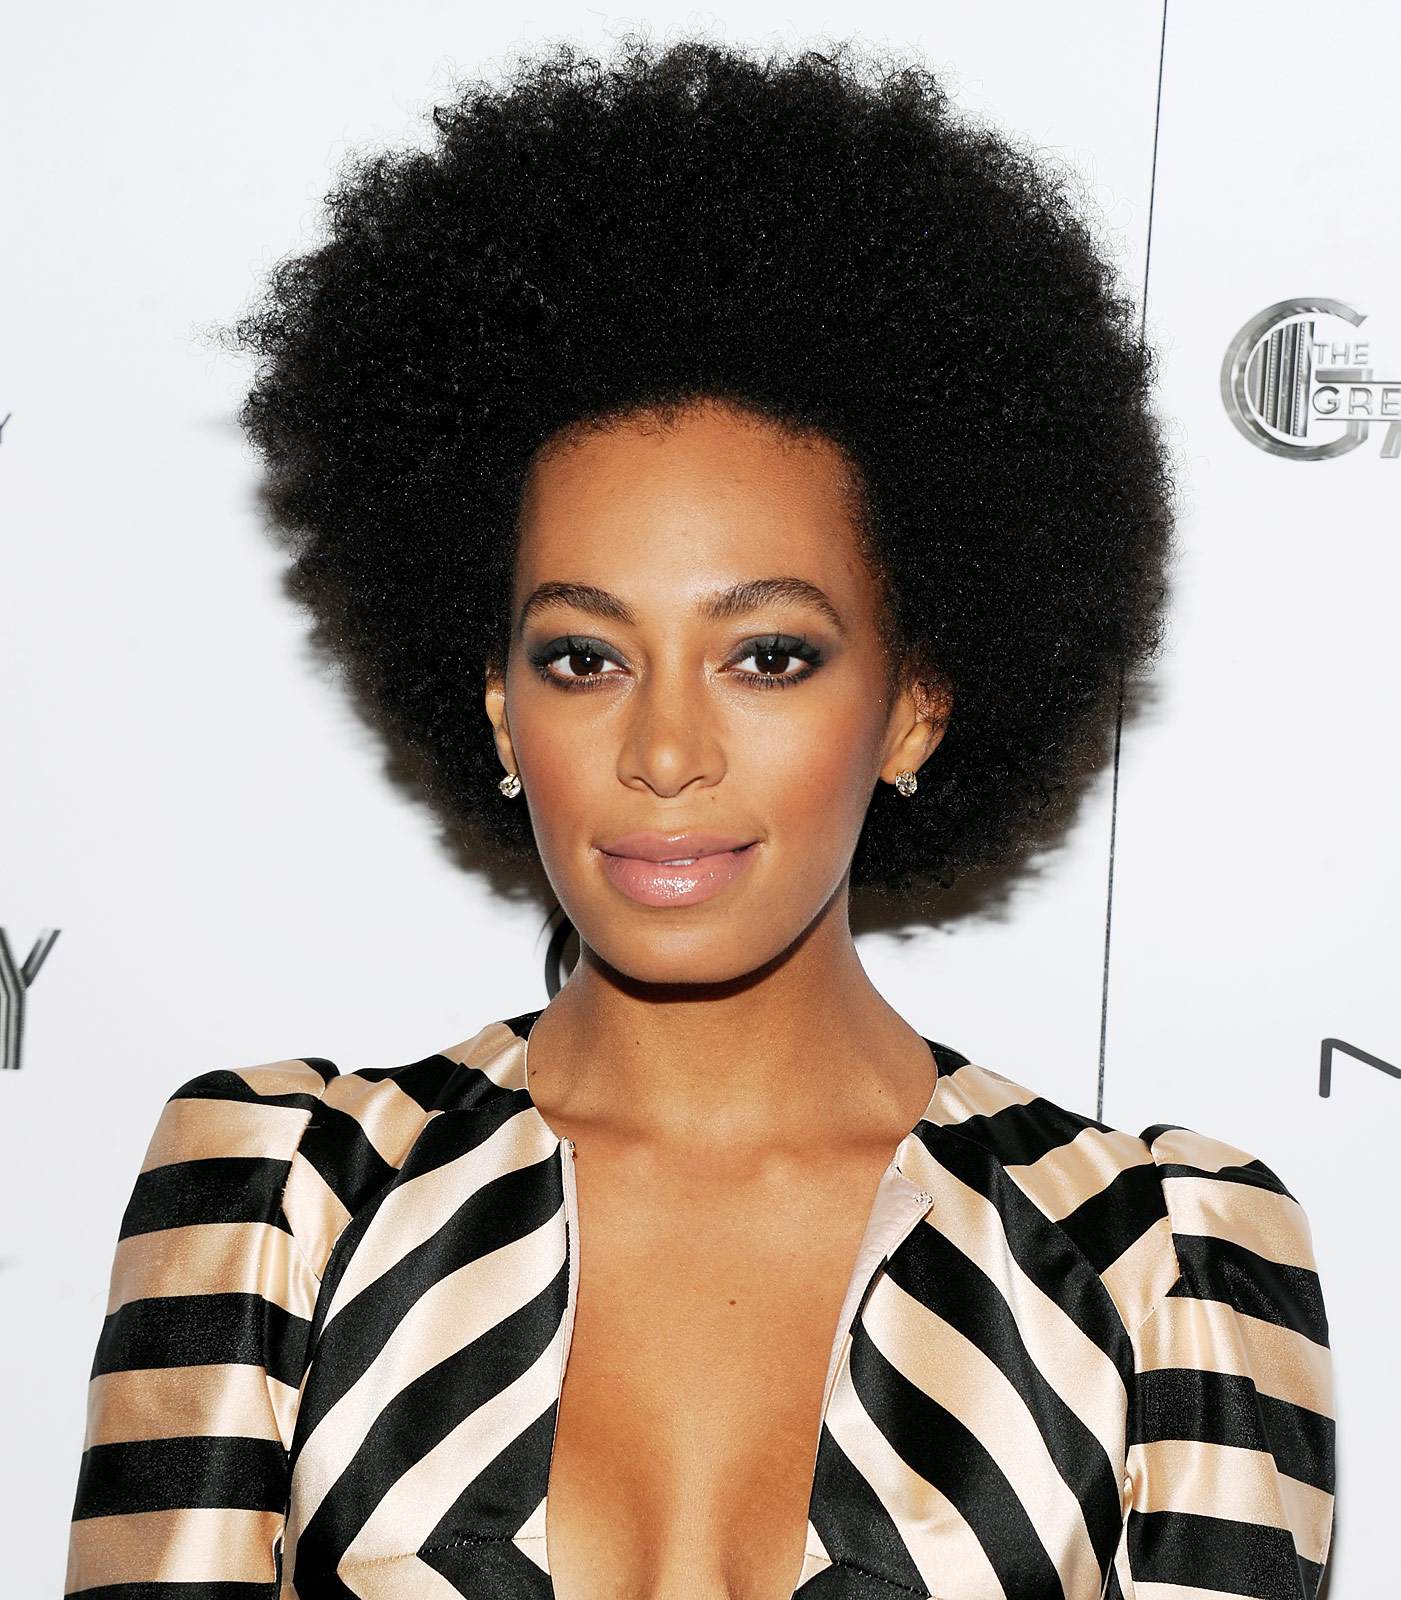 HQ Solange Knowles Wallpapers | File 497.62Kb